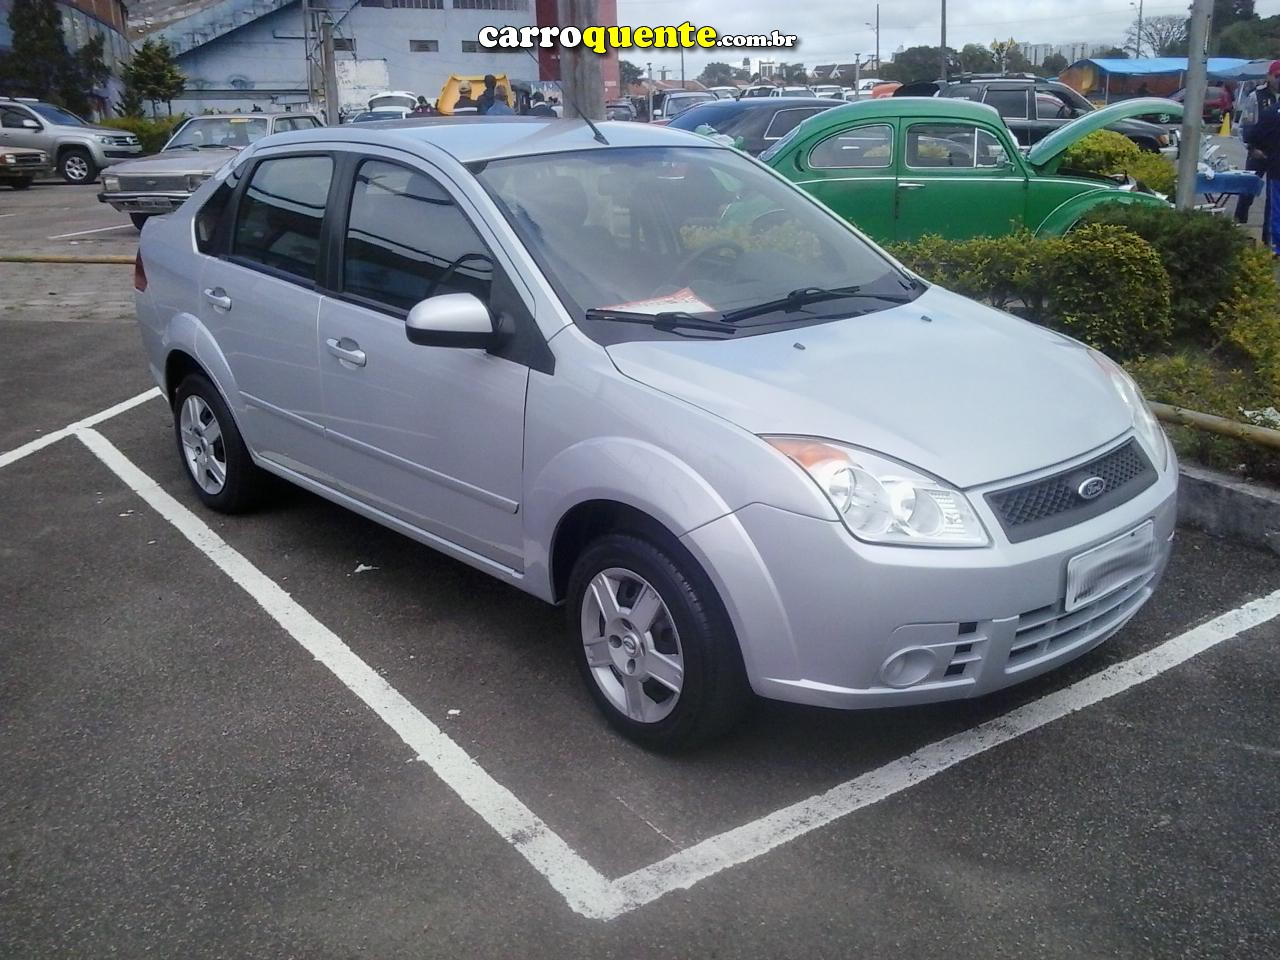 Ford Fiesta 1.0 2008 photo - 7